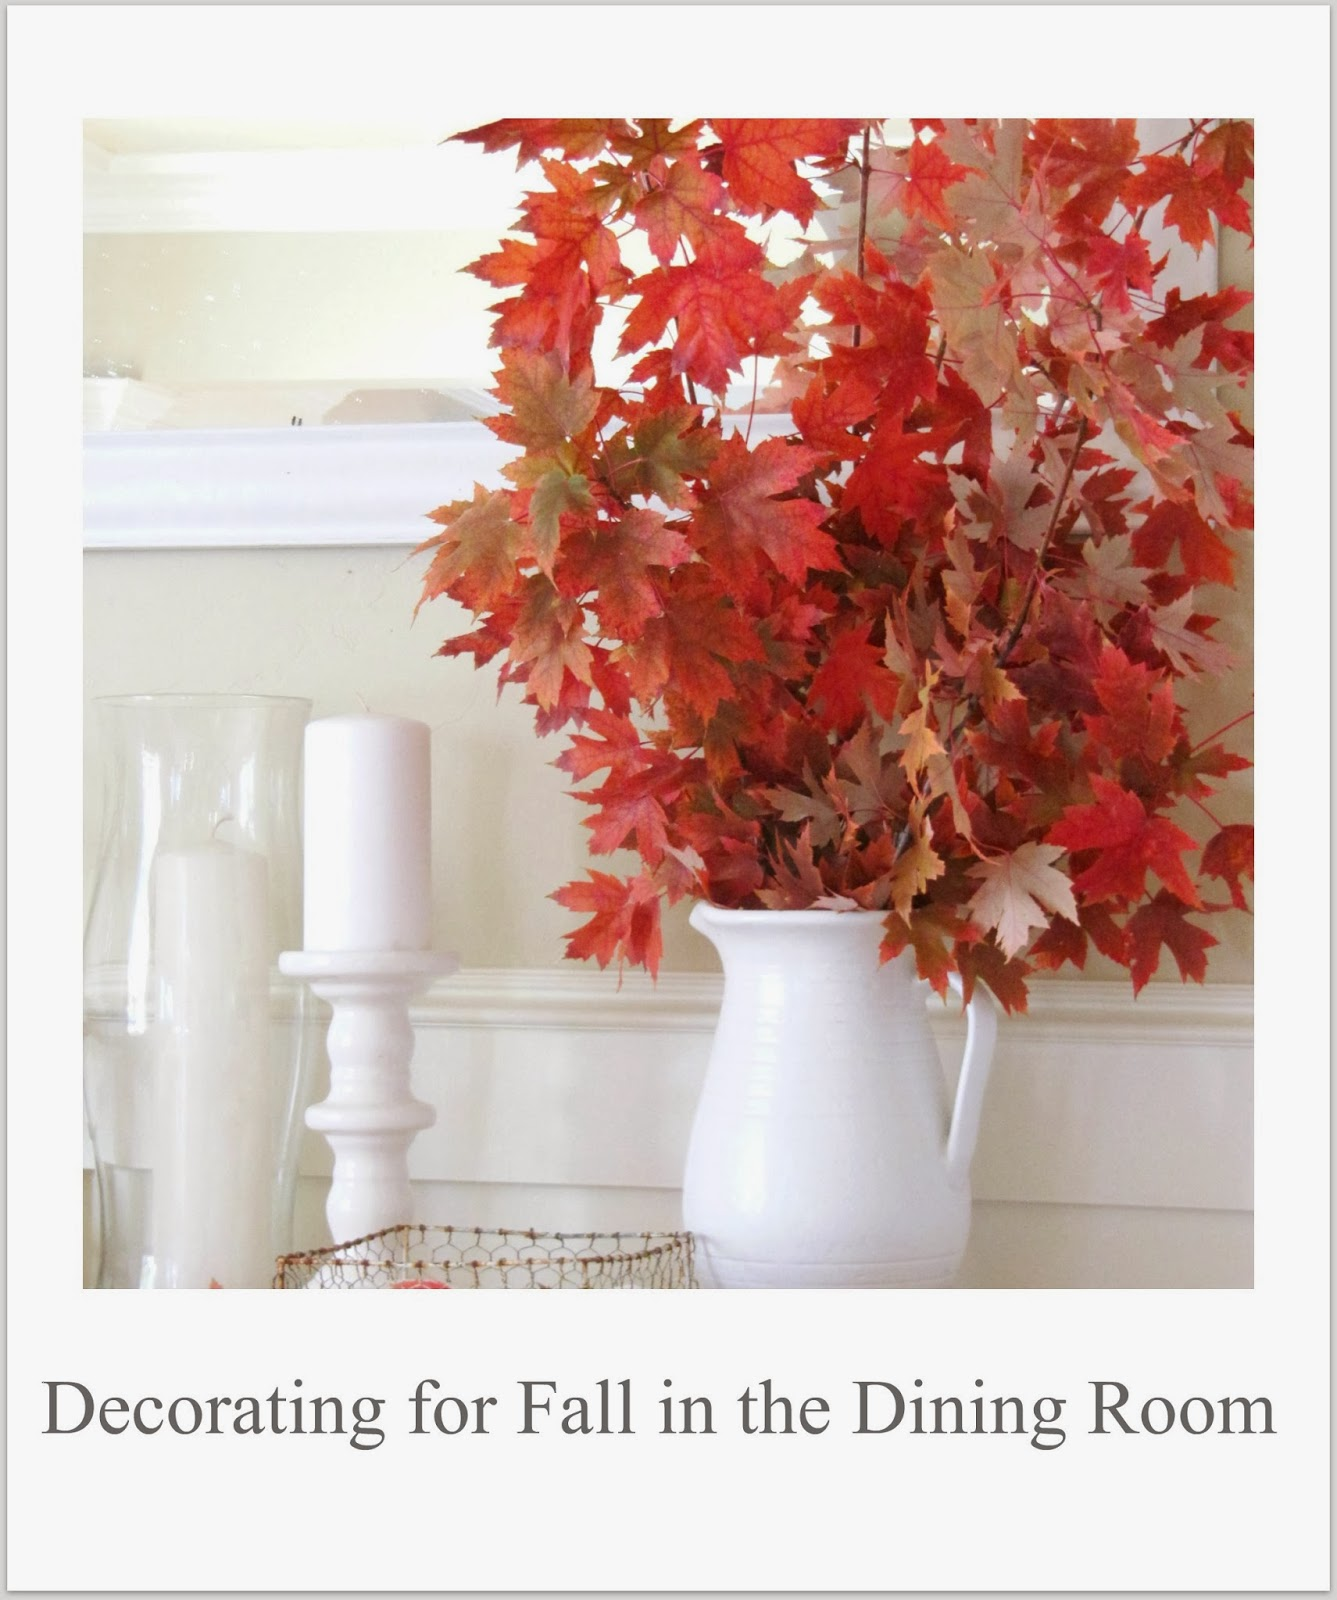 http://thewickerhouse.blogspot.com/2013/10/decorating-for-fall-in-dining-room.html